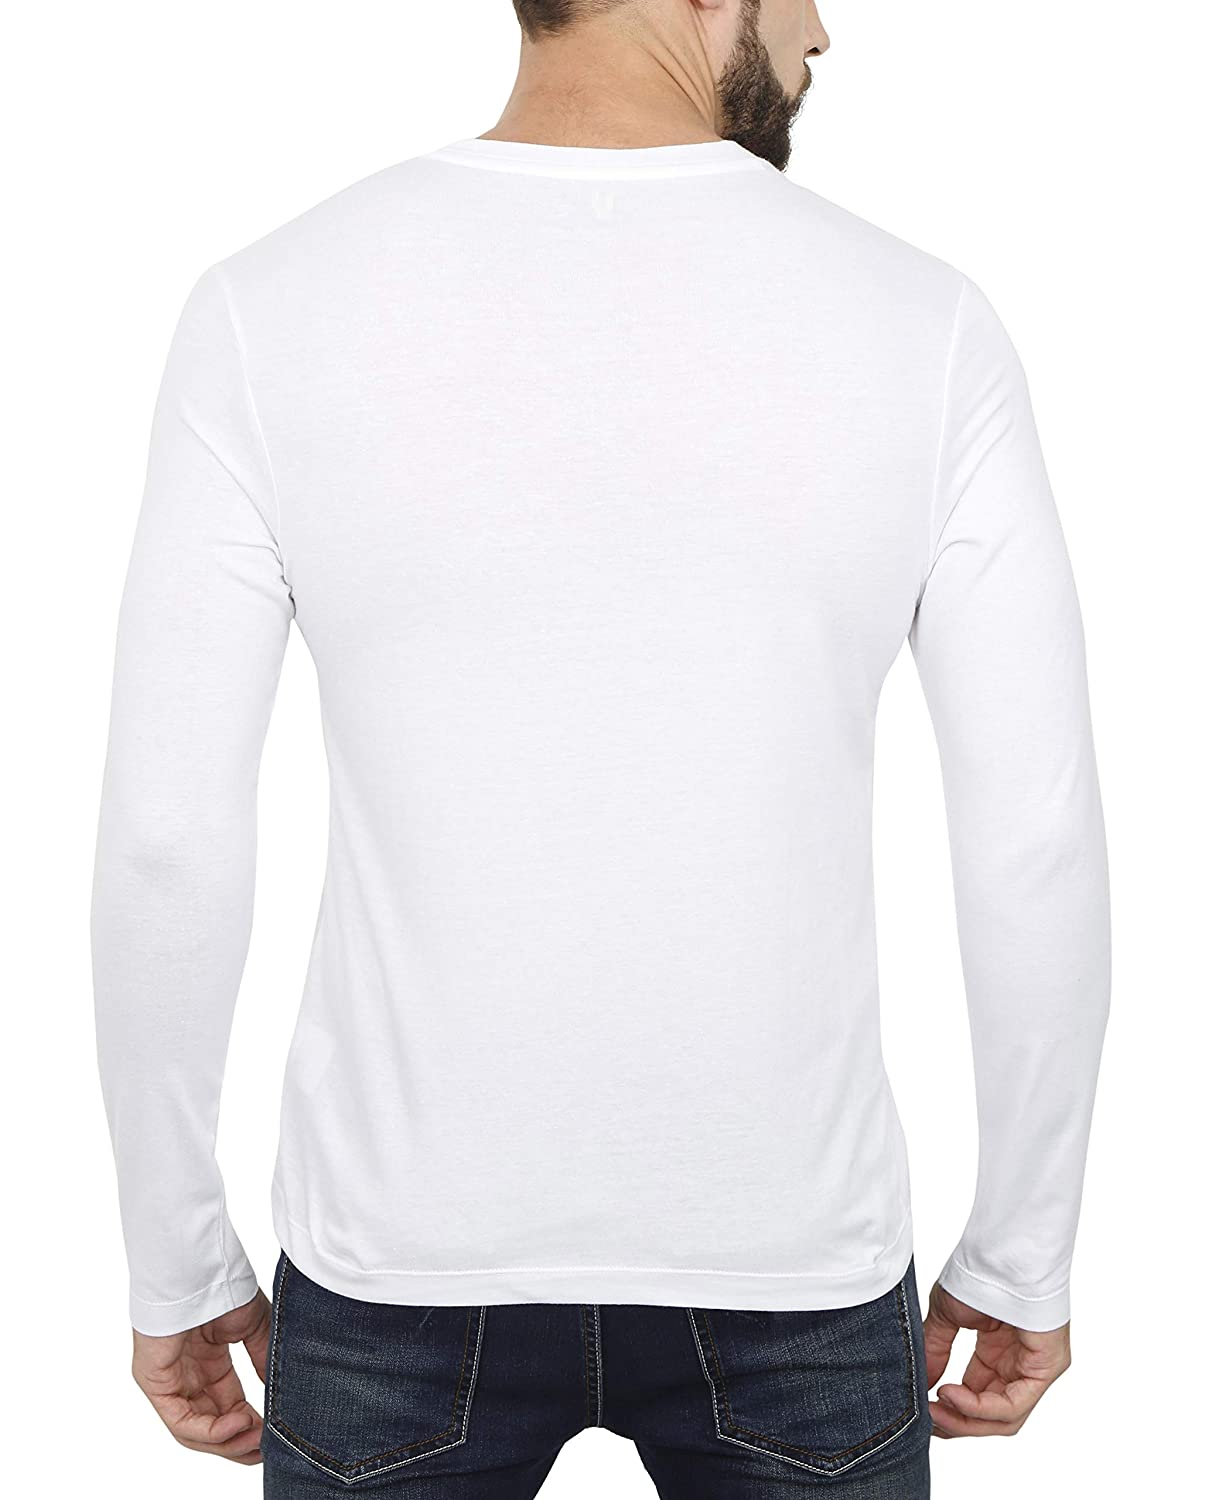 8dddbbe0 Urba Classics Men's Cotton Henley Neck Full Sleeves Plain T Shirts:  Amazon.in: Clothing & Accessories